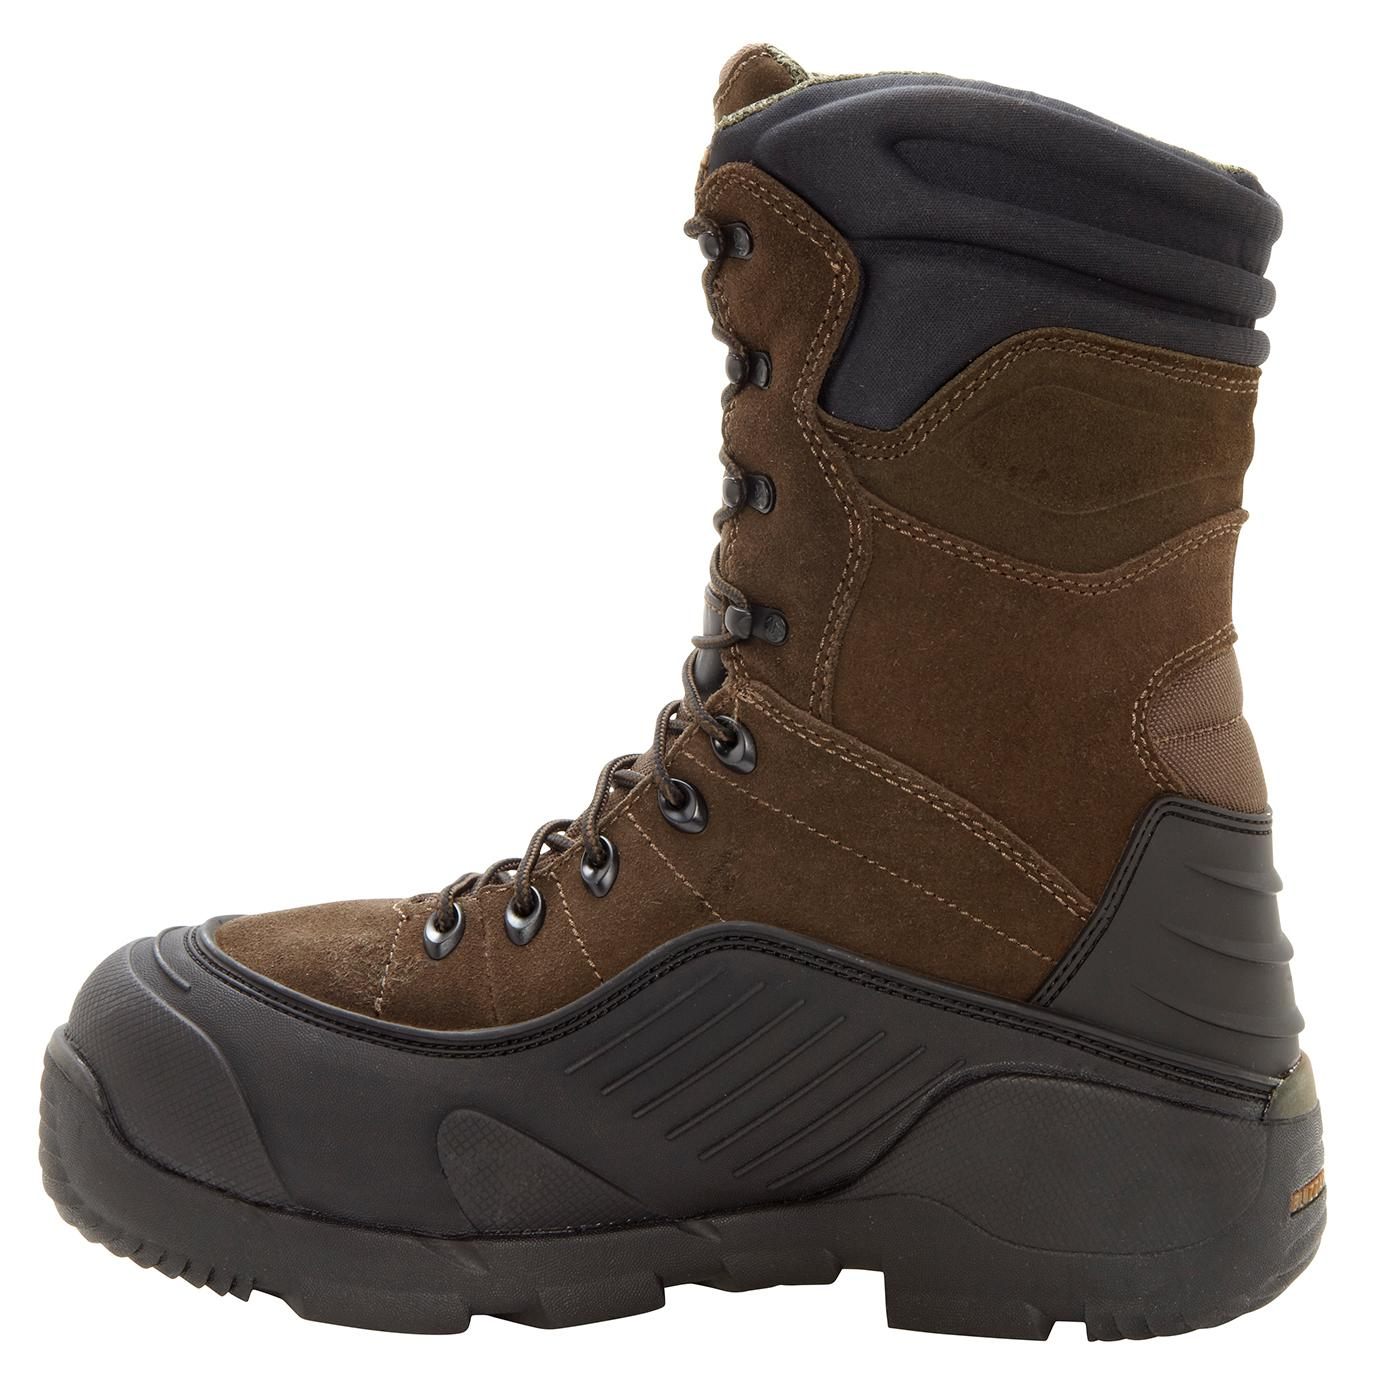 Men's Steel Toe Waterproof Insulated Work Boot - The Rocky Boot ...